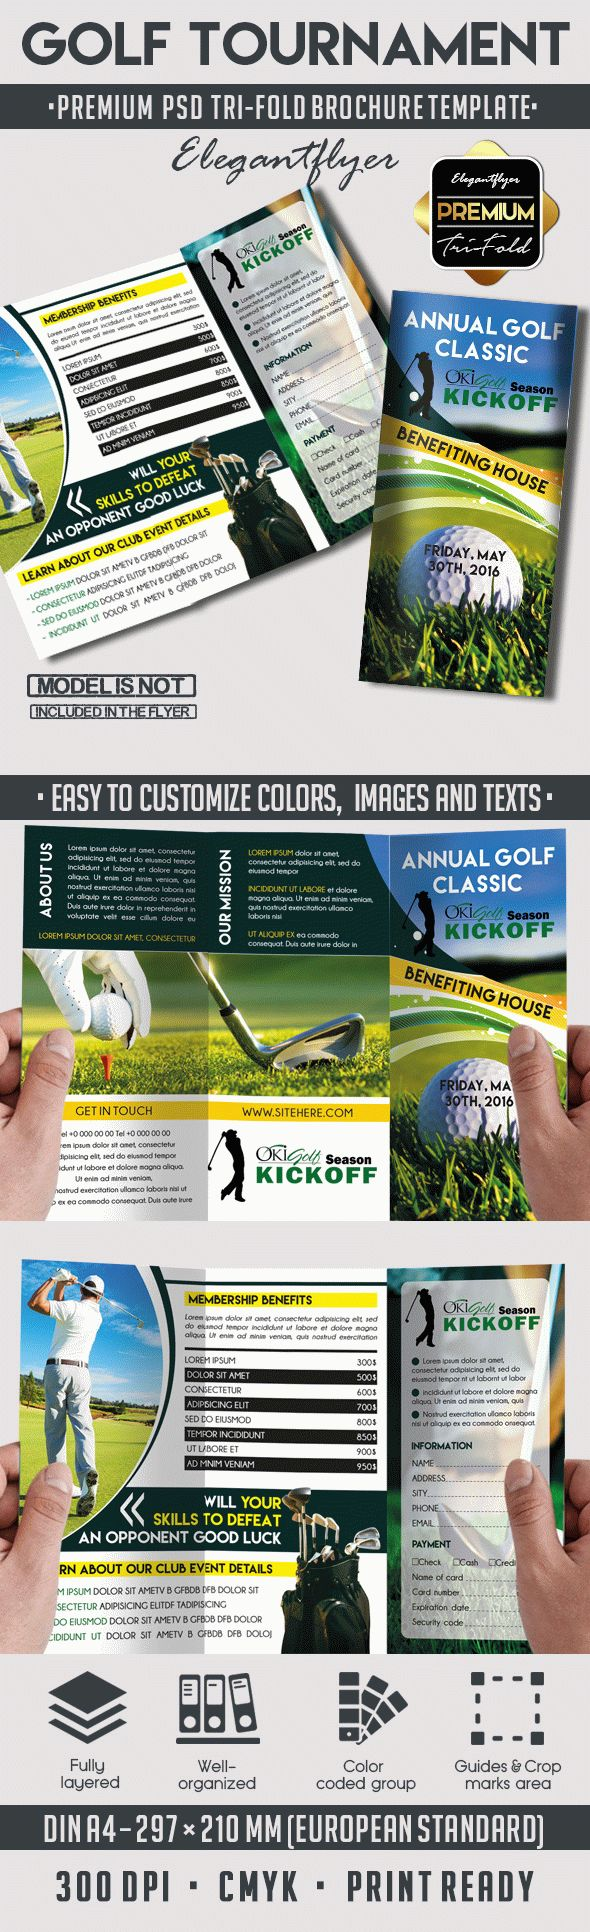 tri fold template for golf tournament by elegantflyer. Black Bedroom Furniture Sets. Home Design Ideas